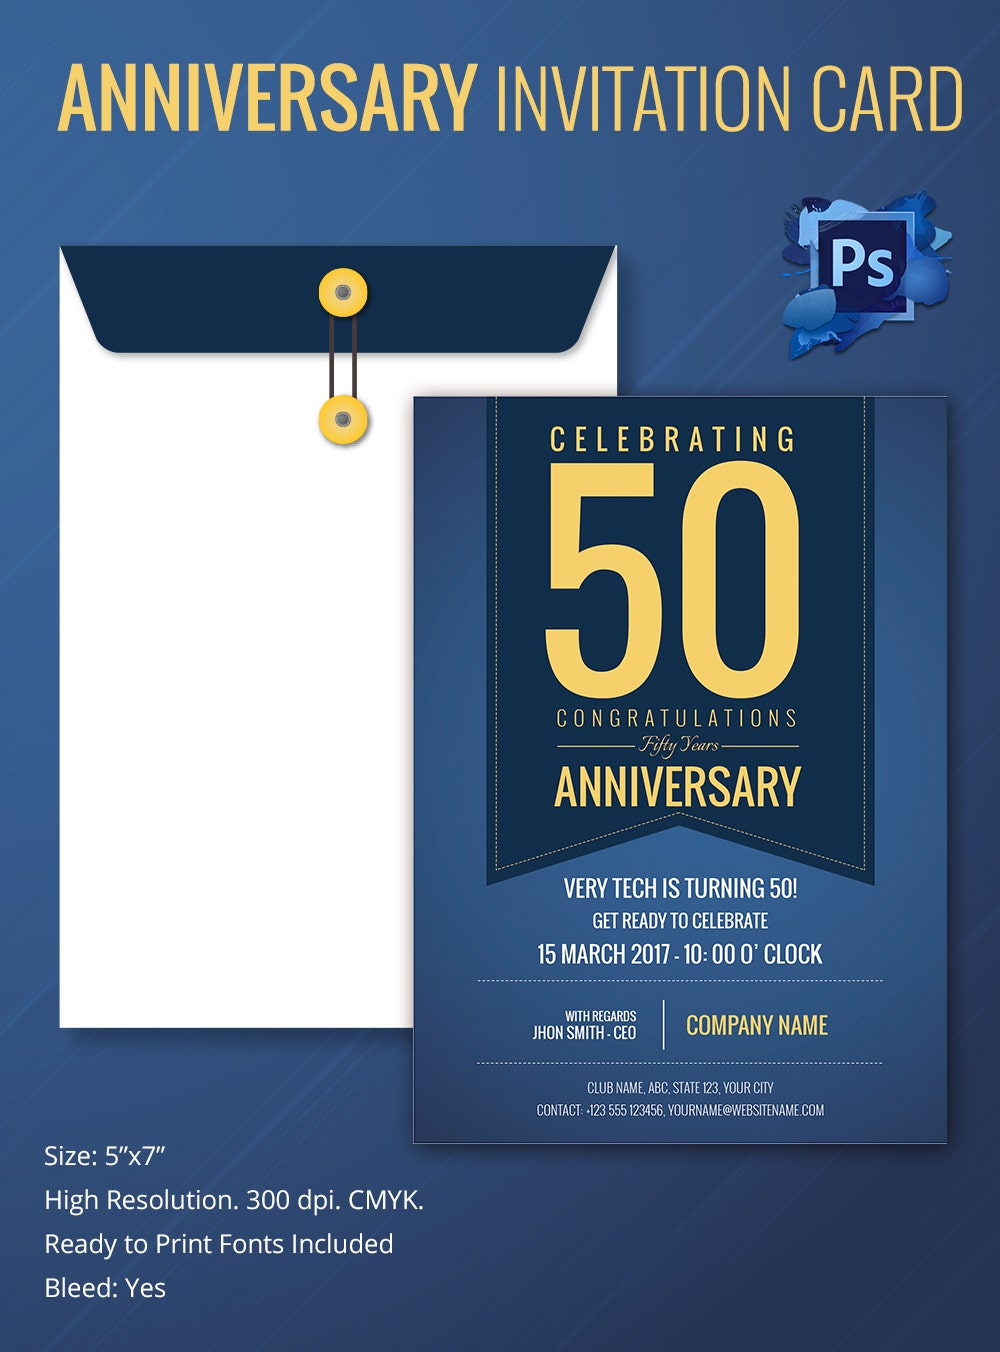 Invitation Card Template 25+ Free PSD AI Vector EPS